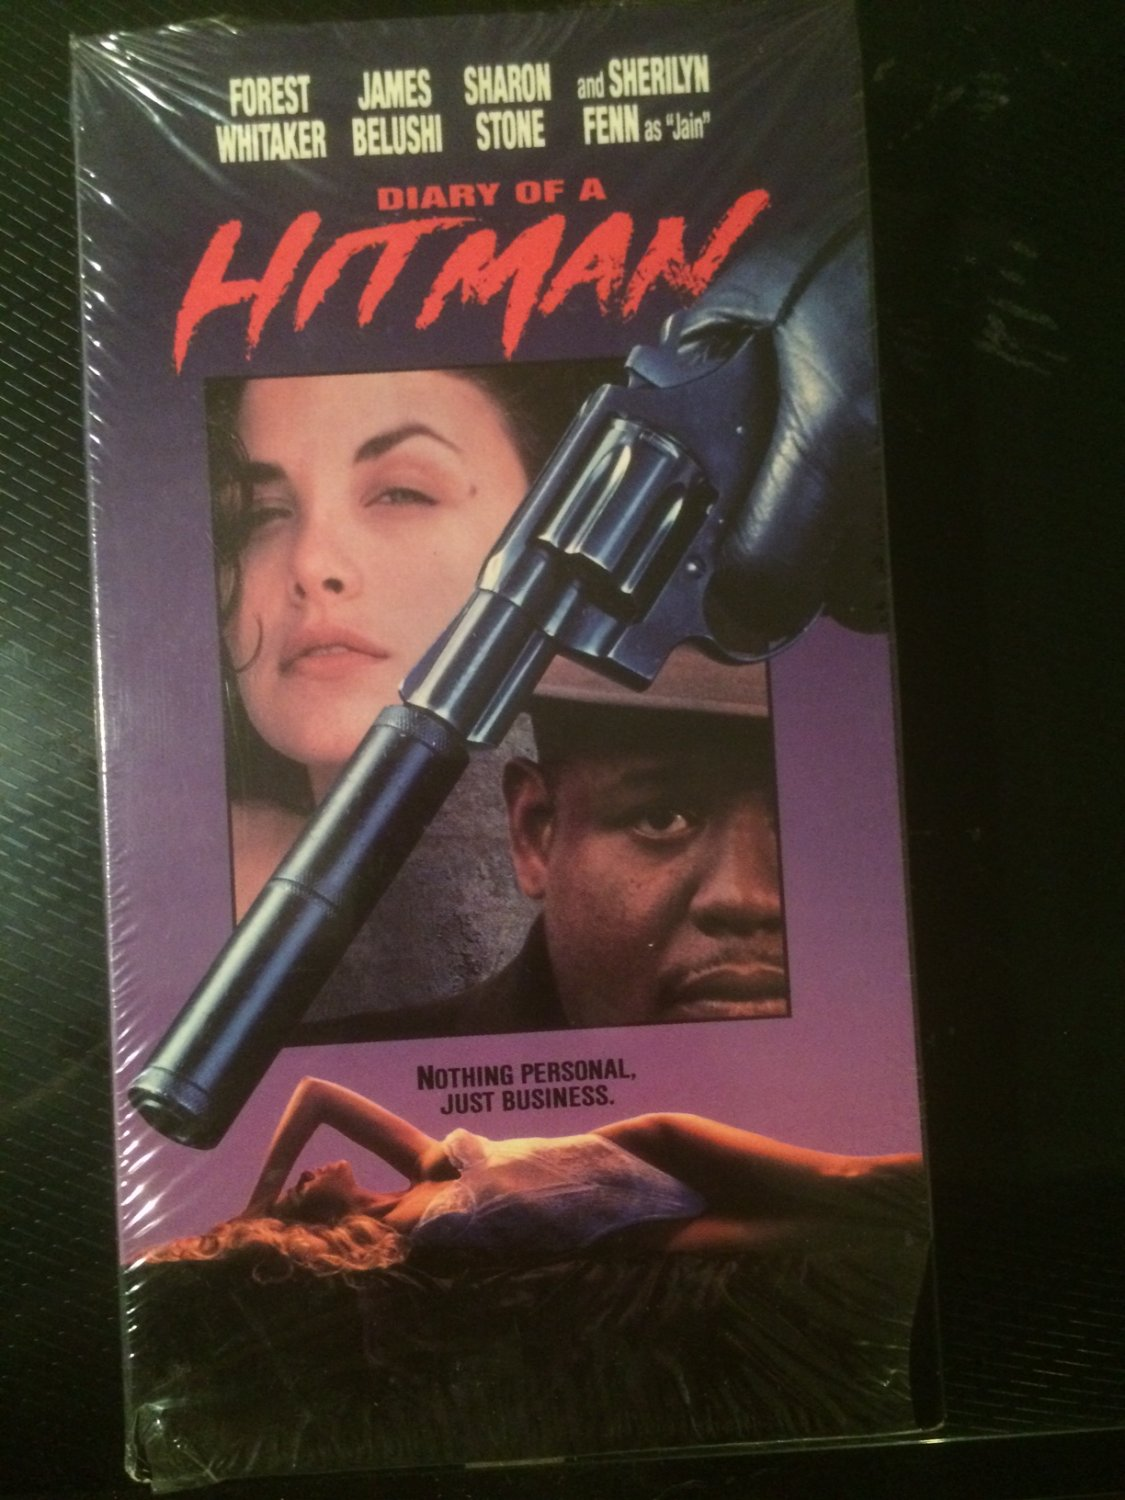 Diary of a Hitman (Forest Whitaker) - VHS - Used - OOP ON DVD